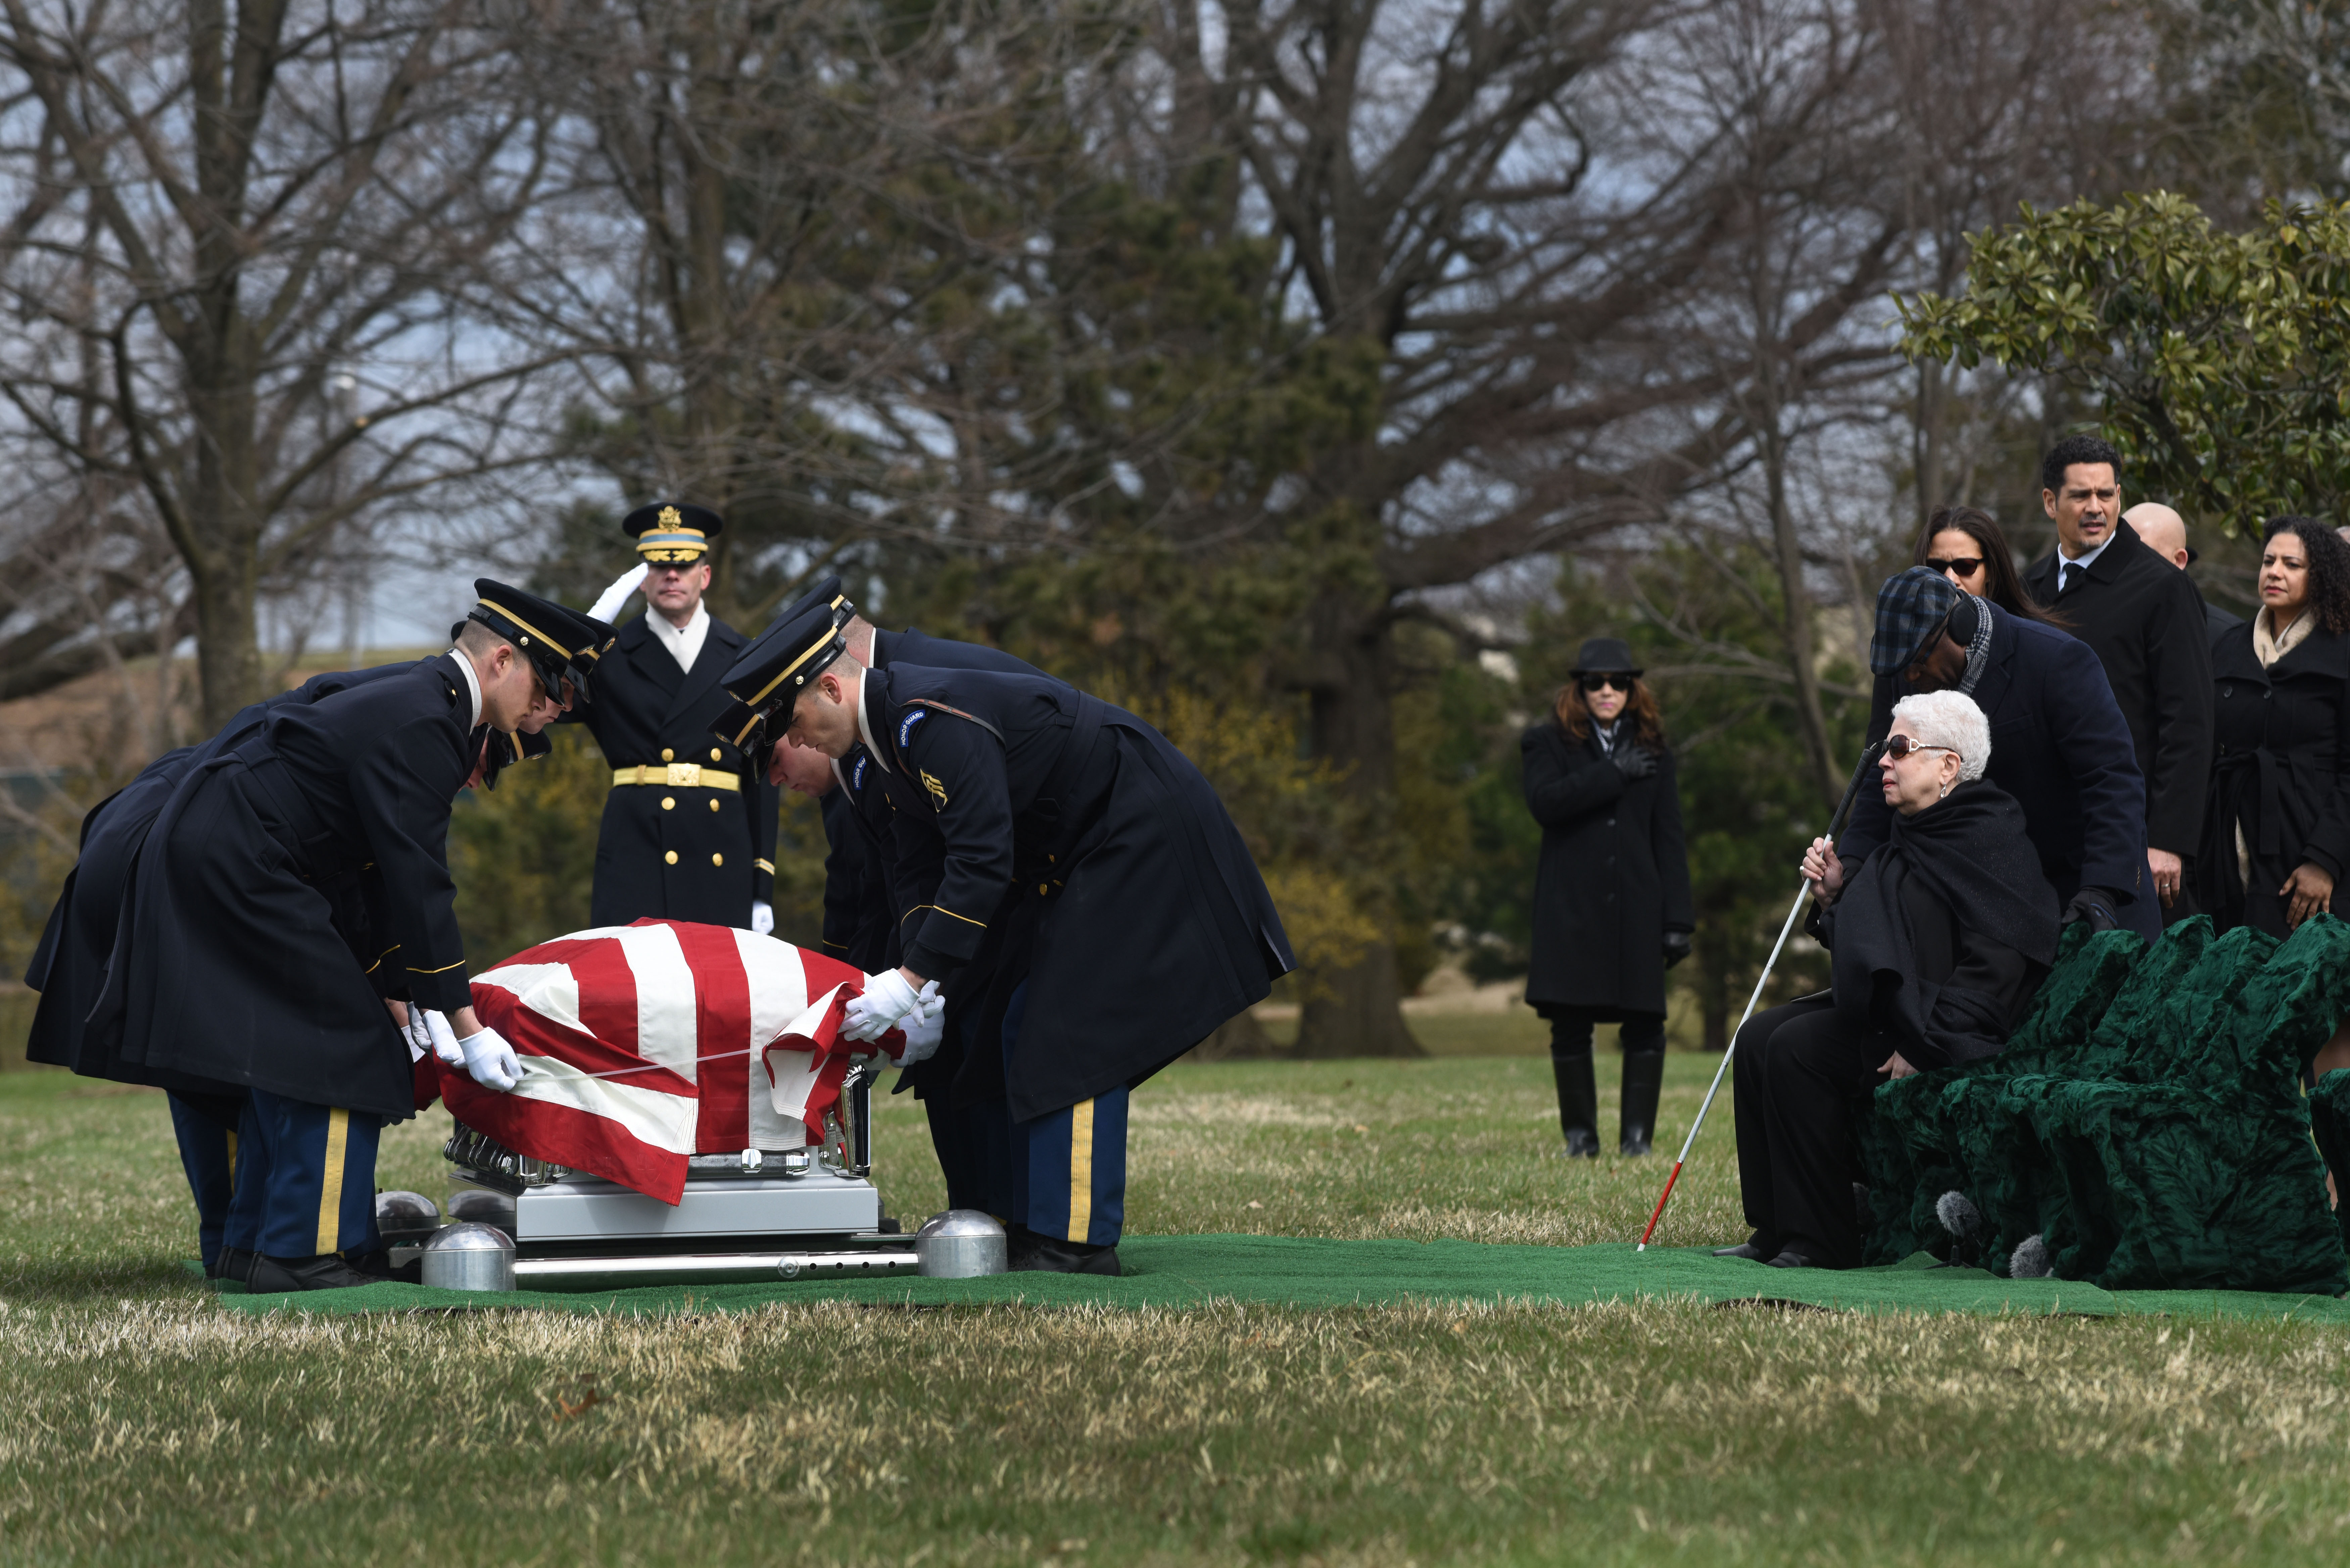 Marla Andrews, right, watches on Friday in Arlington National Cemetery as an honor guard lowers the casket carrying her father, Capt. Lawrence E. Dickson, a Tuskegee Airman whose remains were located in 2017 in Austria. MUST CREDIT: Washington Post photo by Michael Robinson Chavez